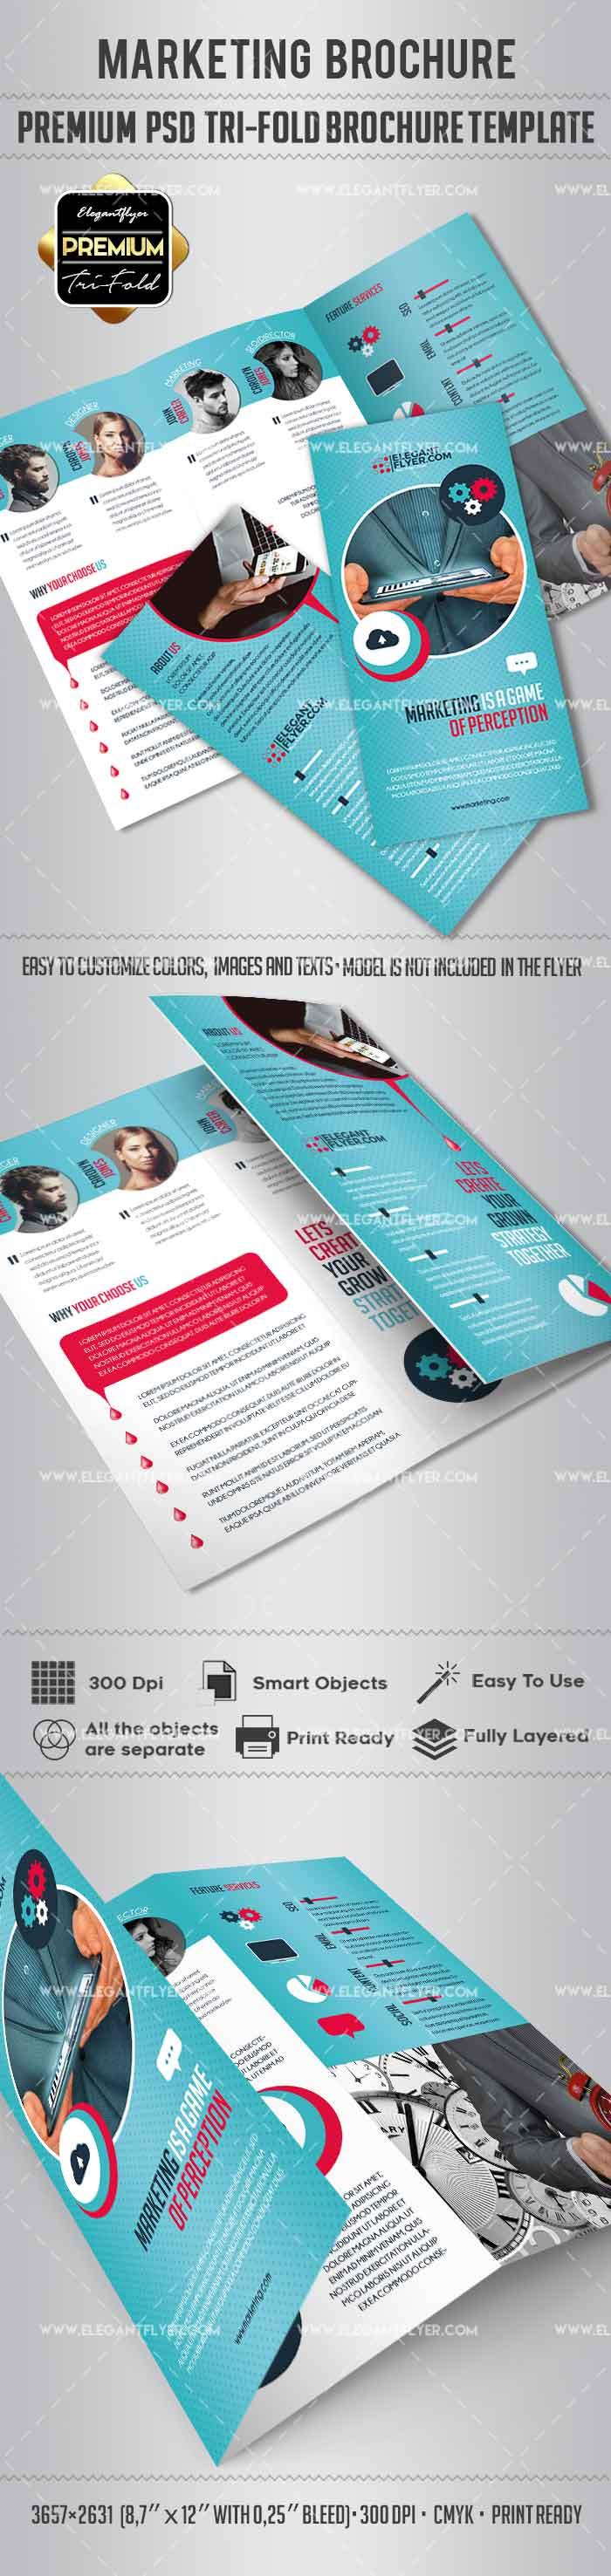 Tri fold brochure for marketing by elegantflyer for Psd template brochure